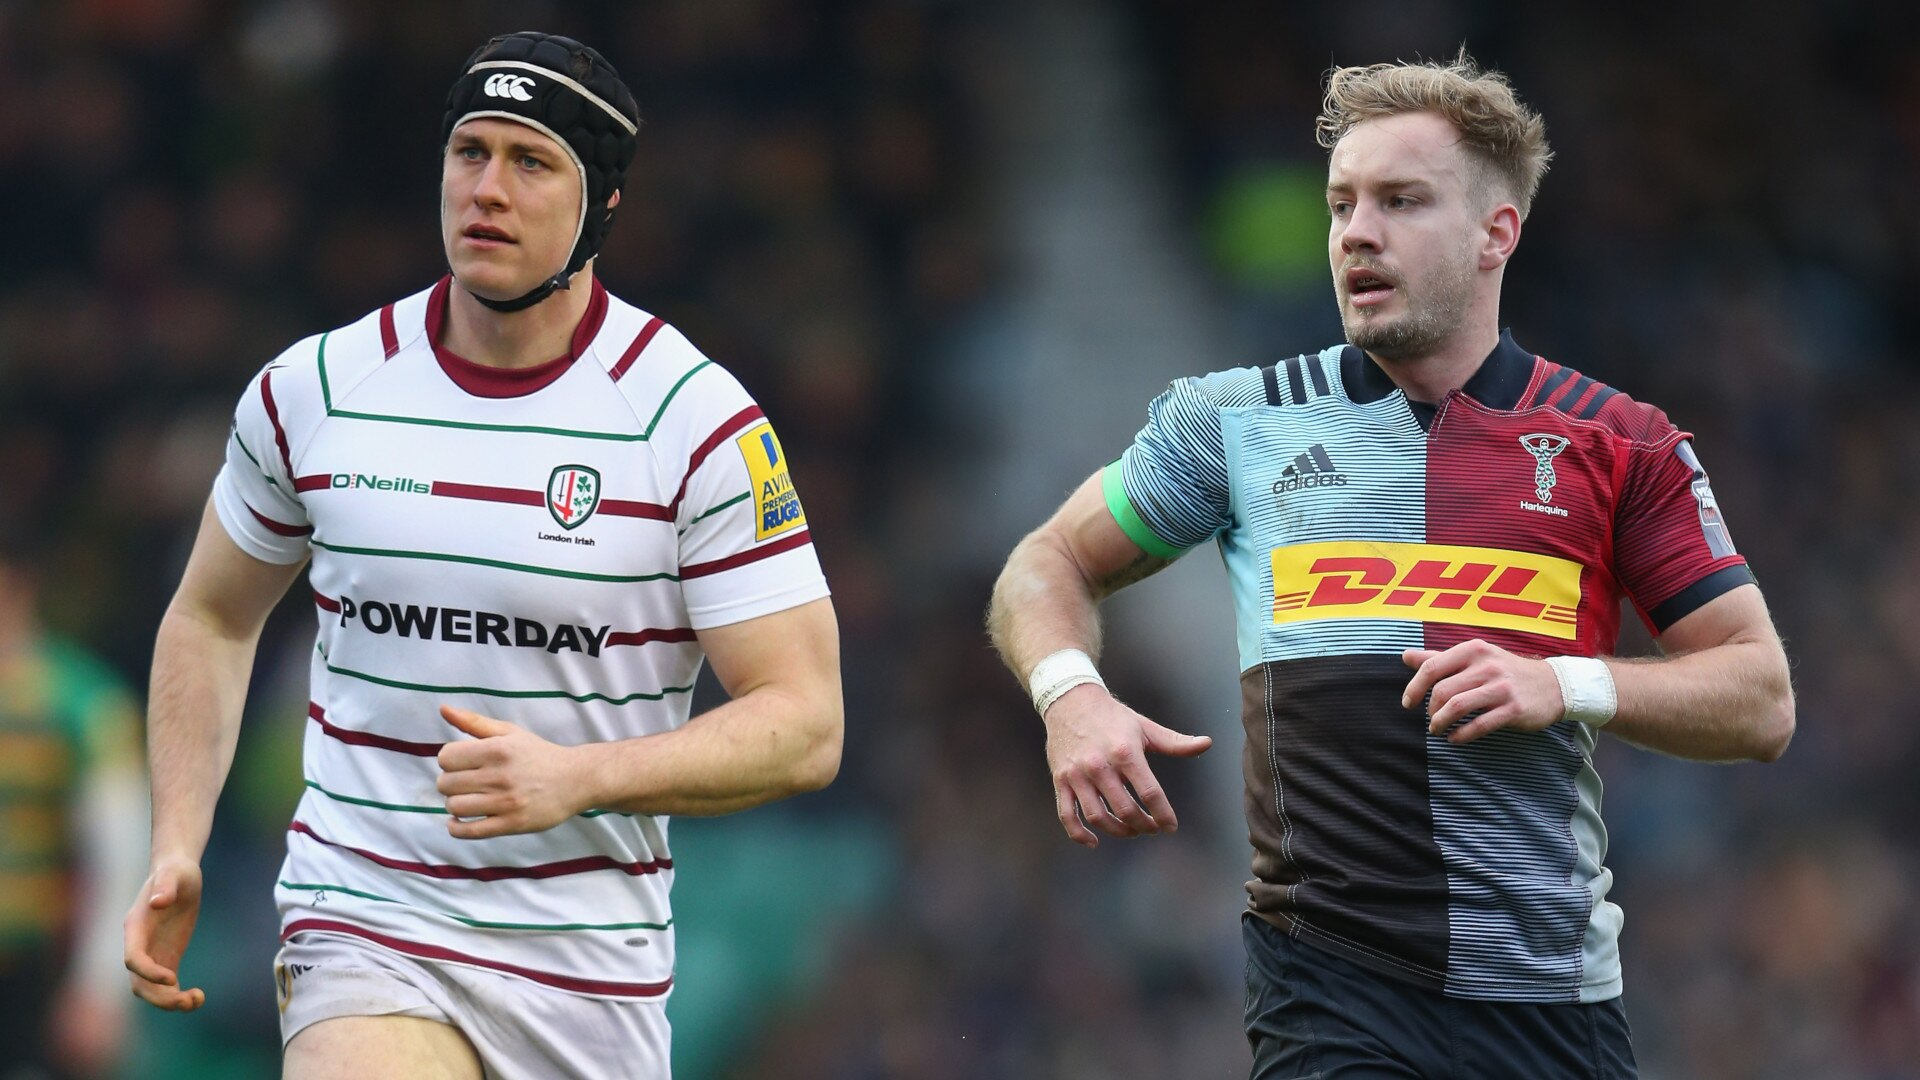 Both Irish and English interest as Zebre confirm official 2019/20 squad